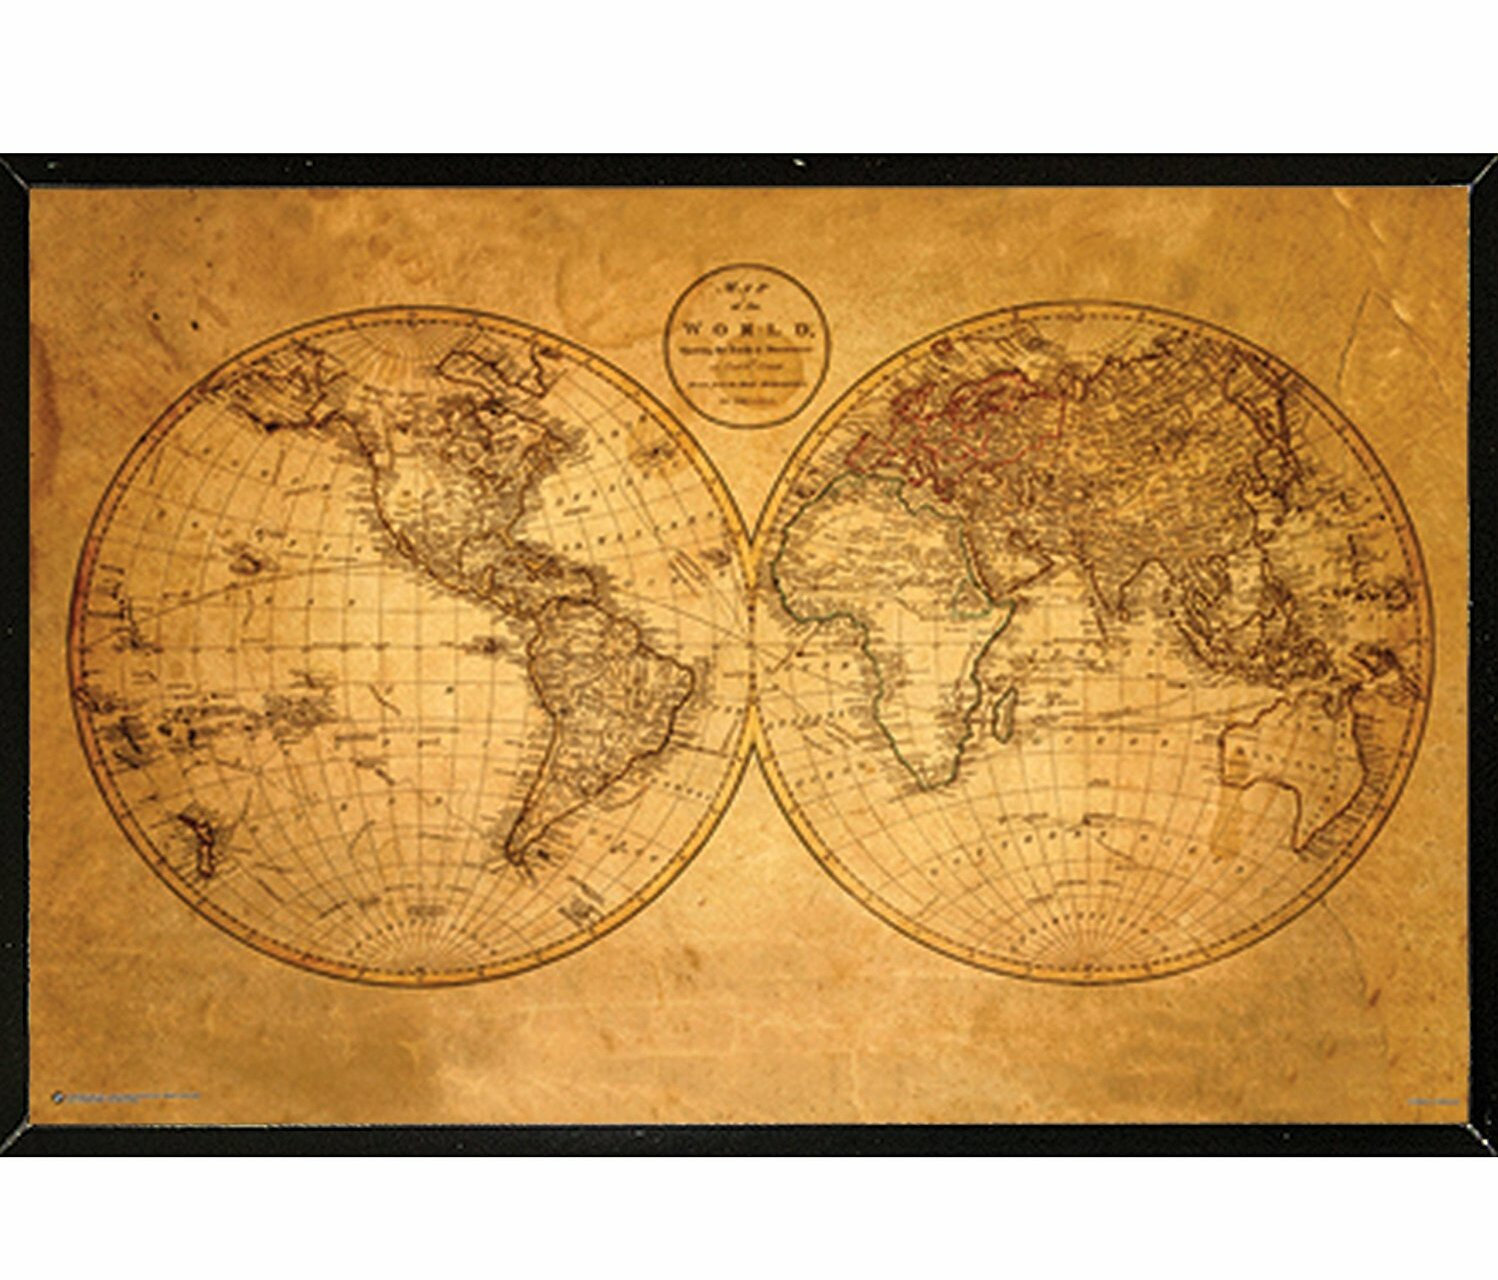 Frame Usa Old World Map Framed Graphic Art Print Poster Wayfair